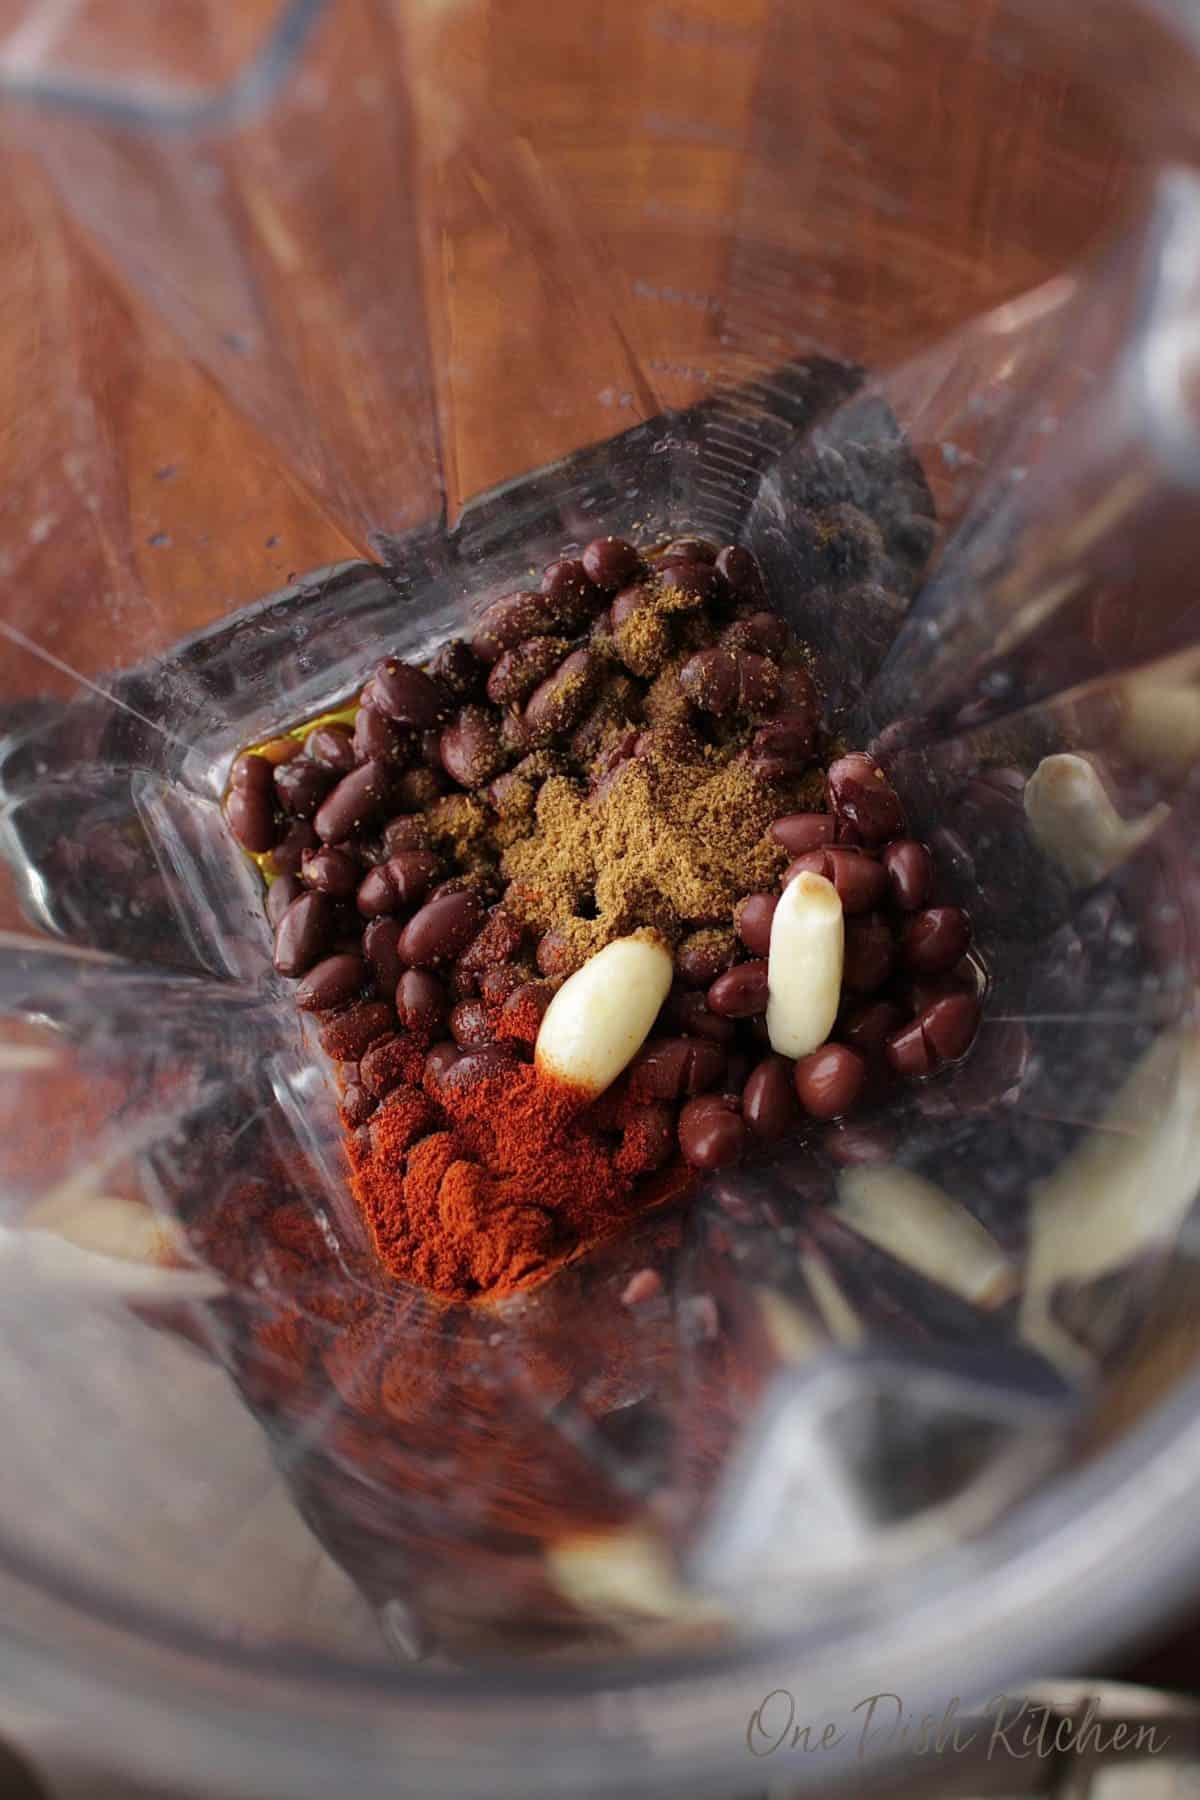 Black beans, garlic cloves, and spices in a blender